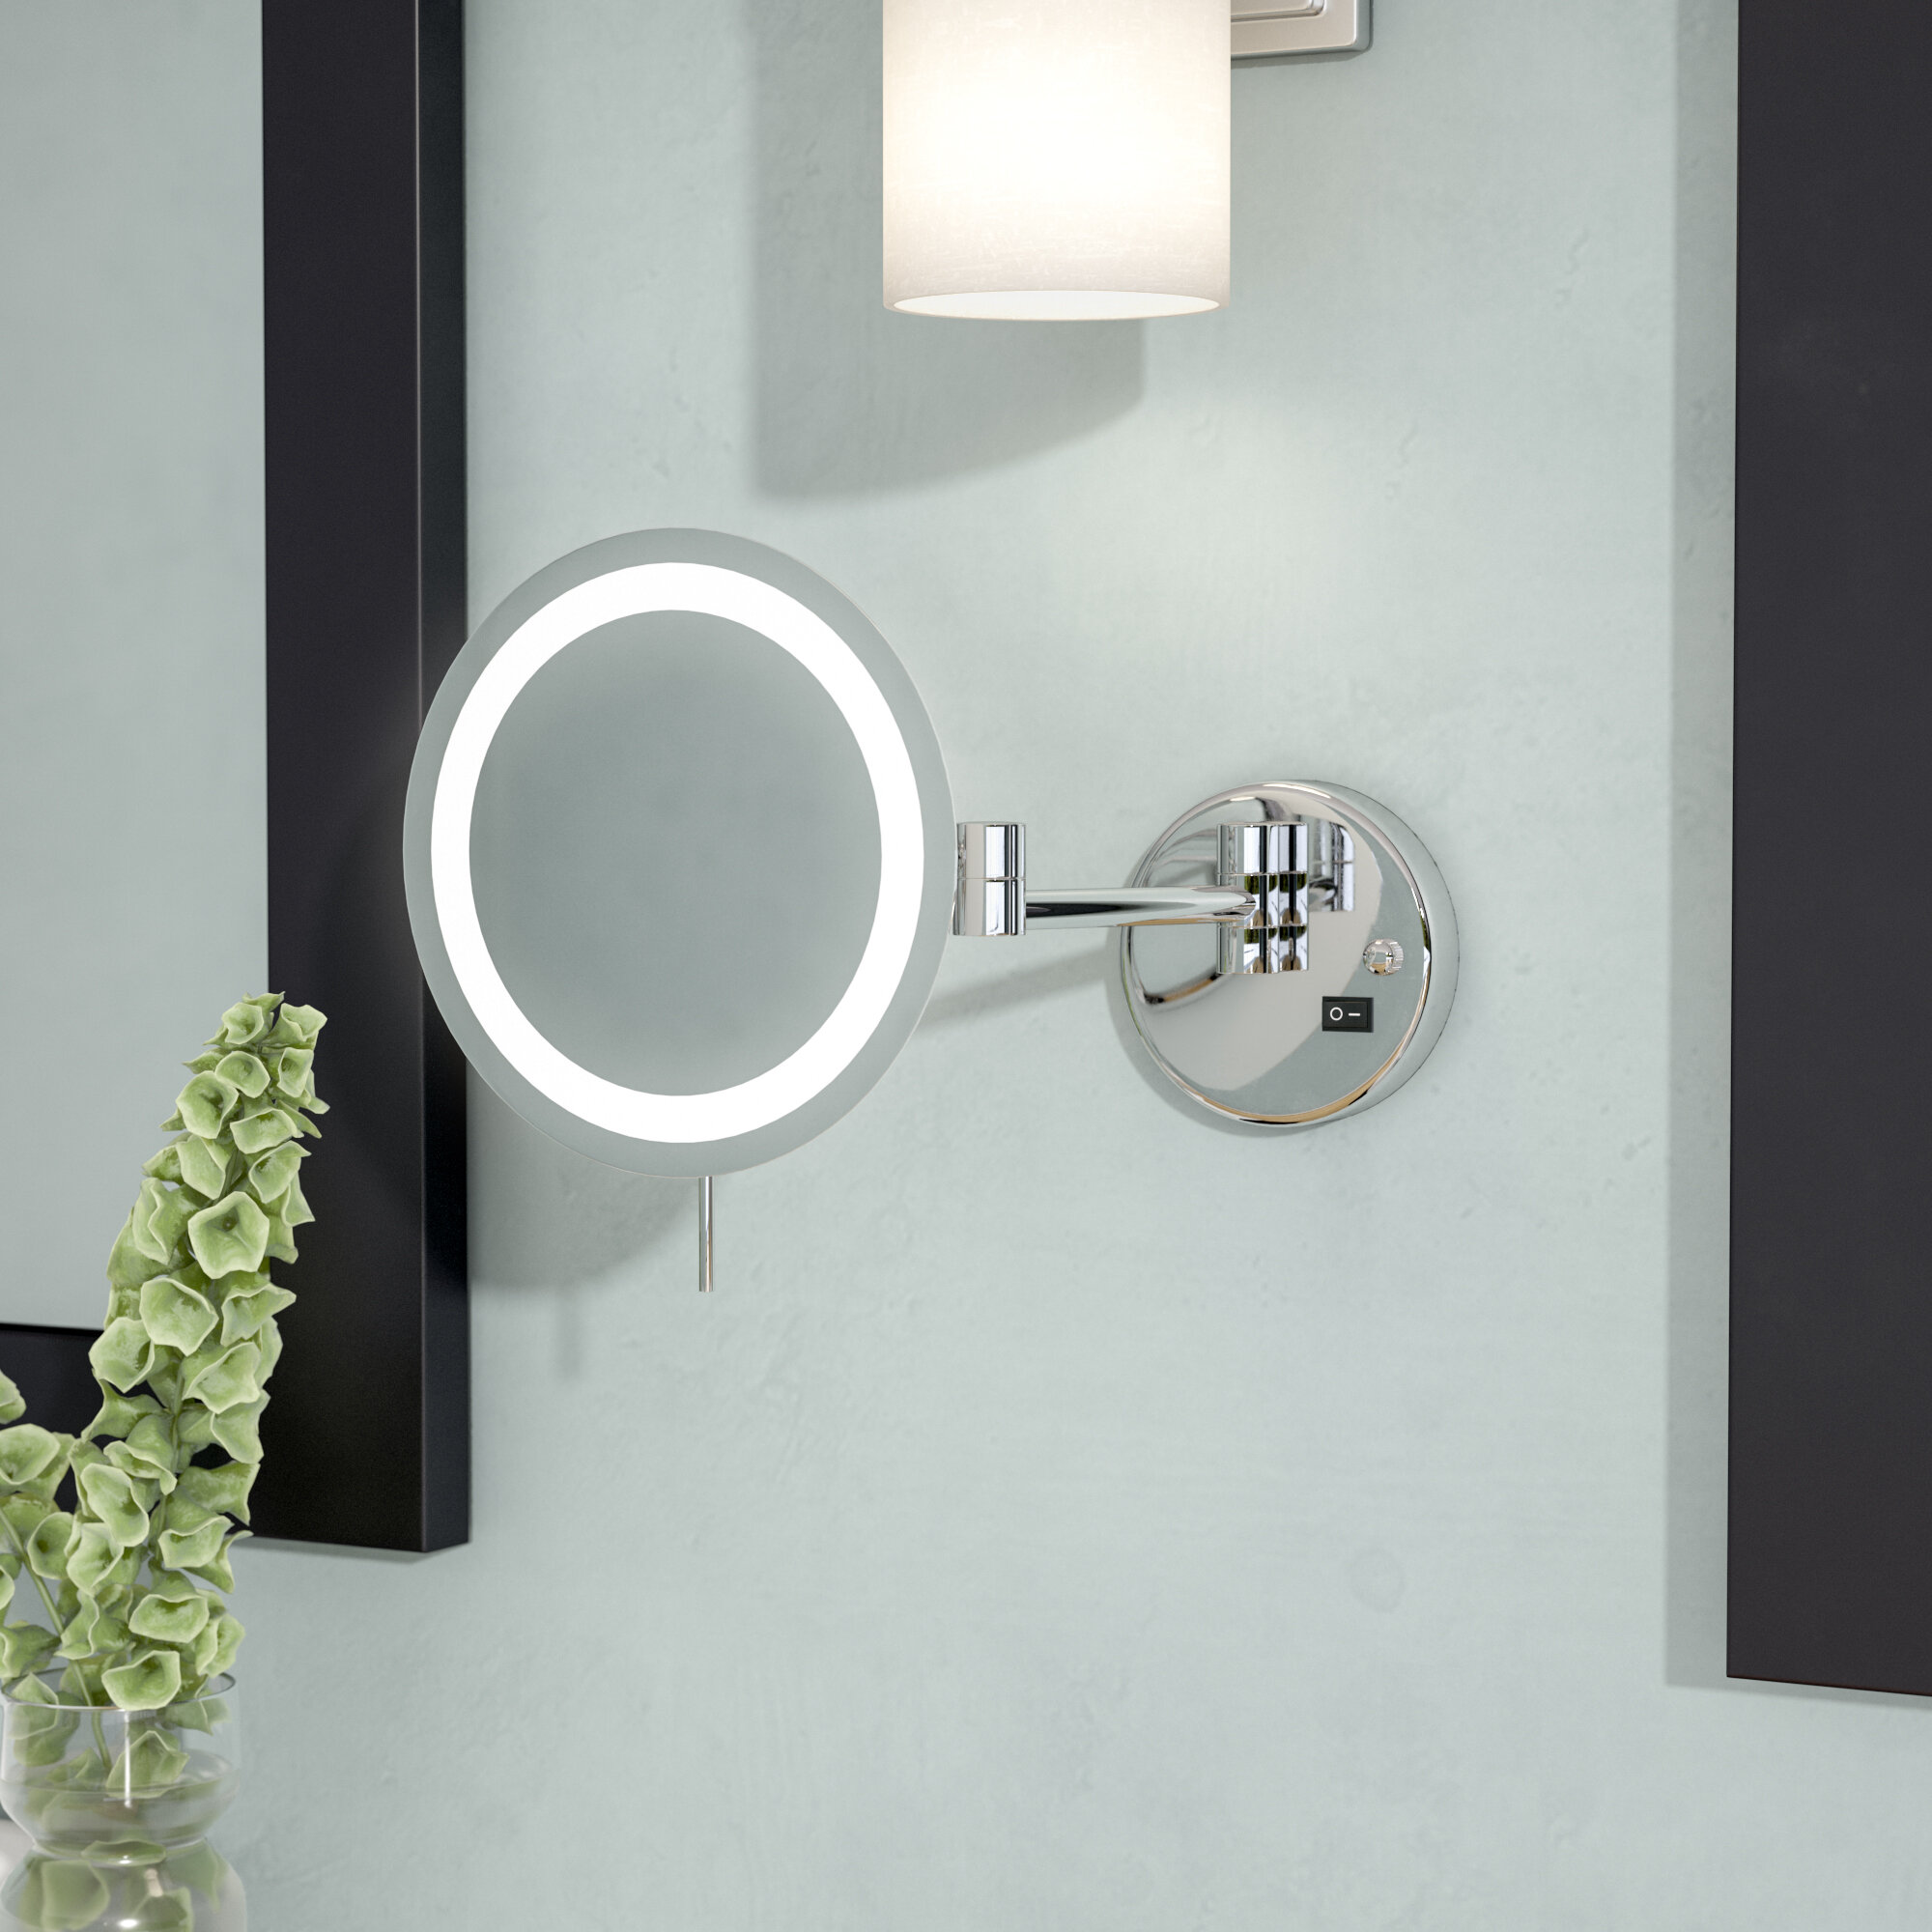 Symple Stuff LED 8x Magnifying Wall Mount Makeup Mirror & Reviews ...